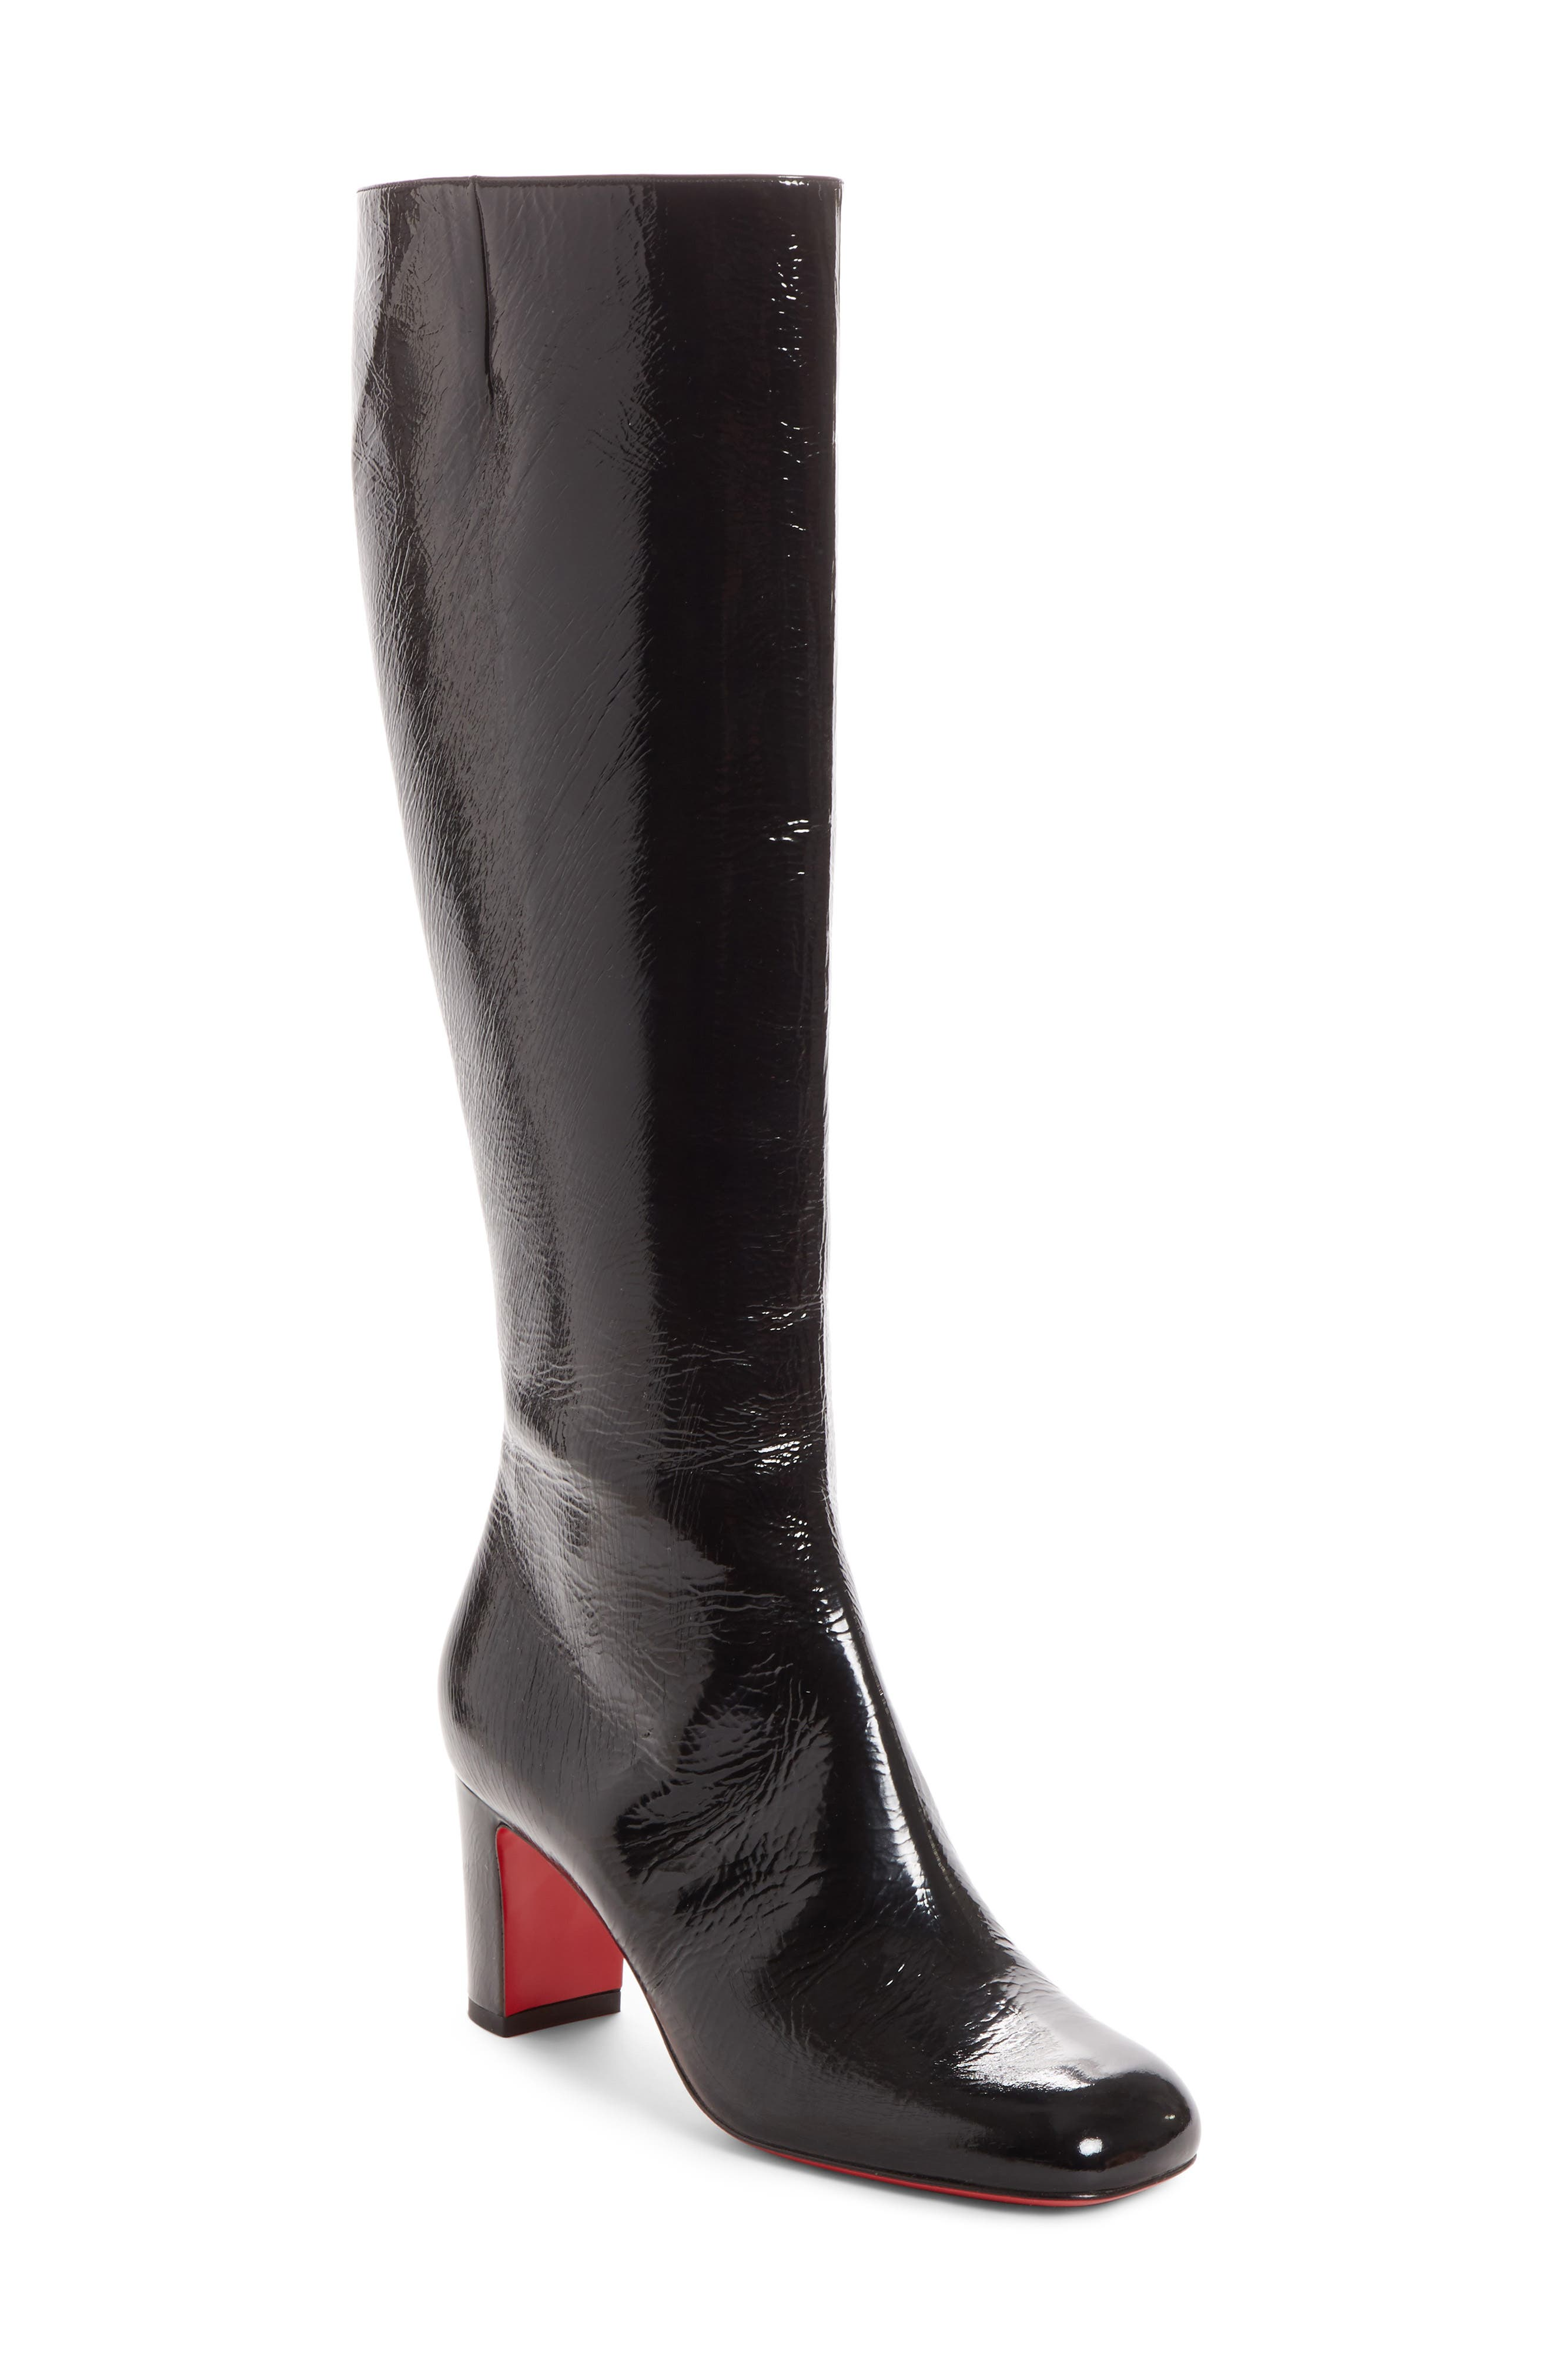 Christian Louboutin Cadrilla Knee High Boot